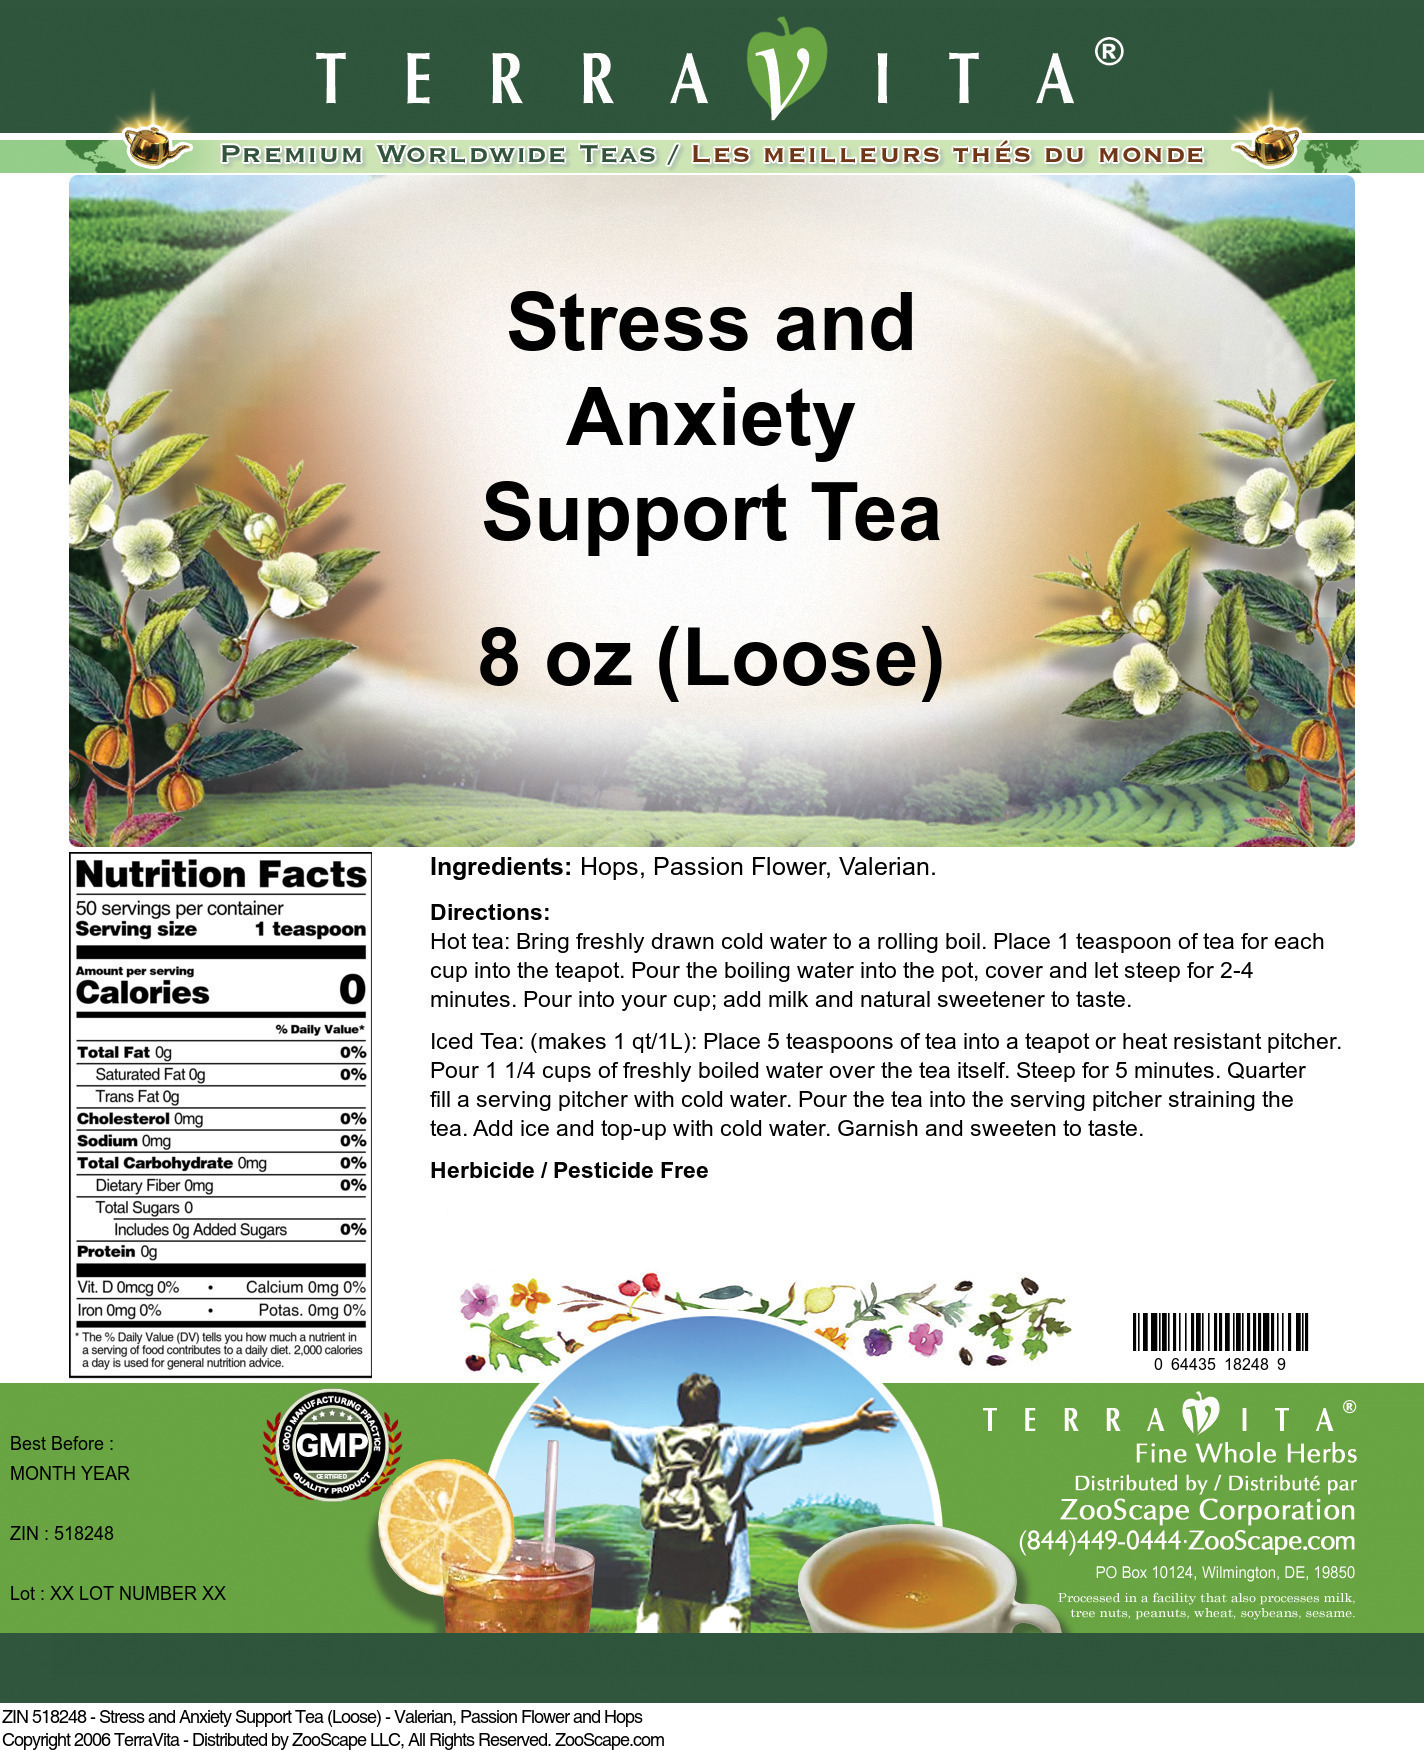 Stress and Anxiety Support Tea (Loose) - Valerian, Passion Flower and Hops